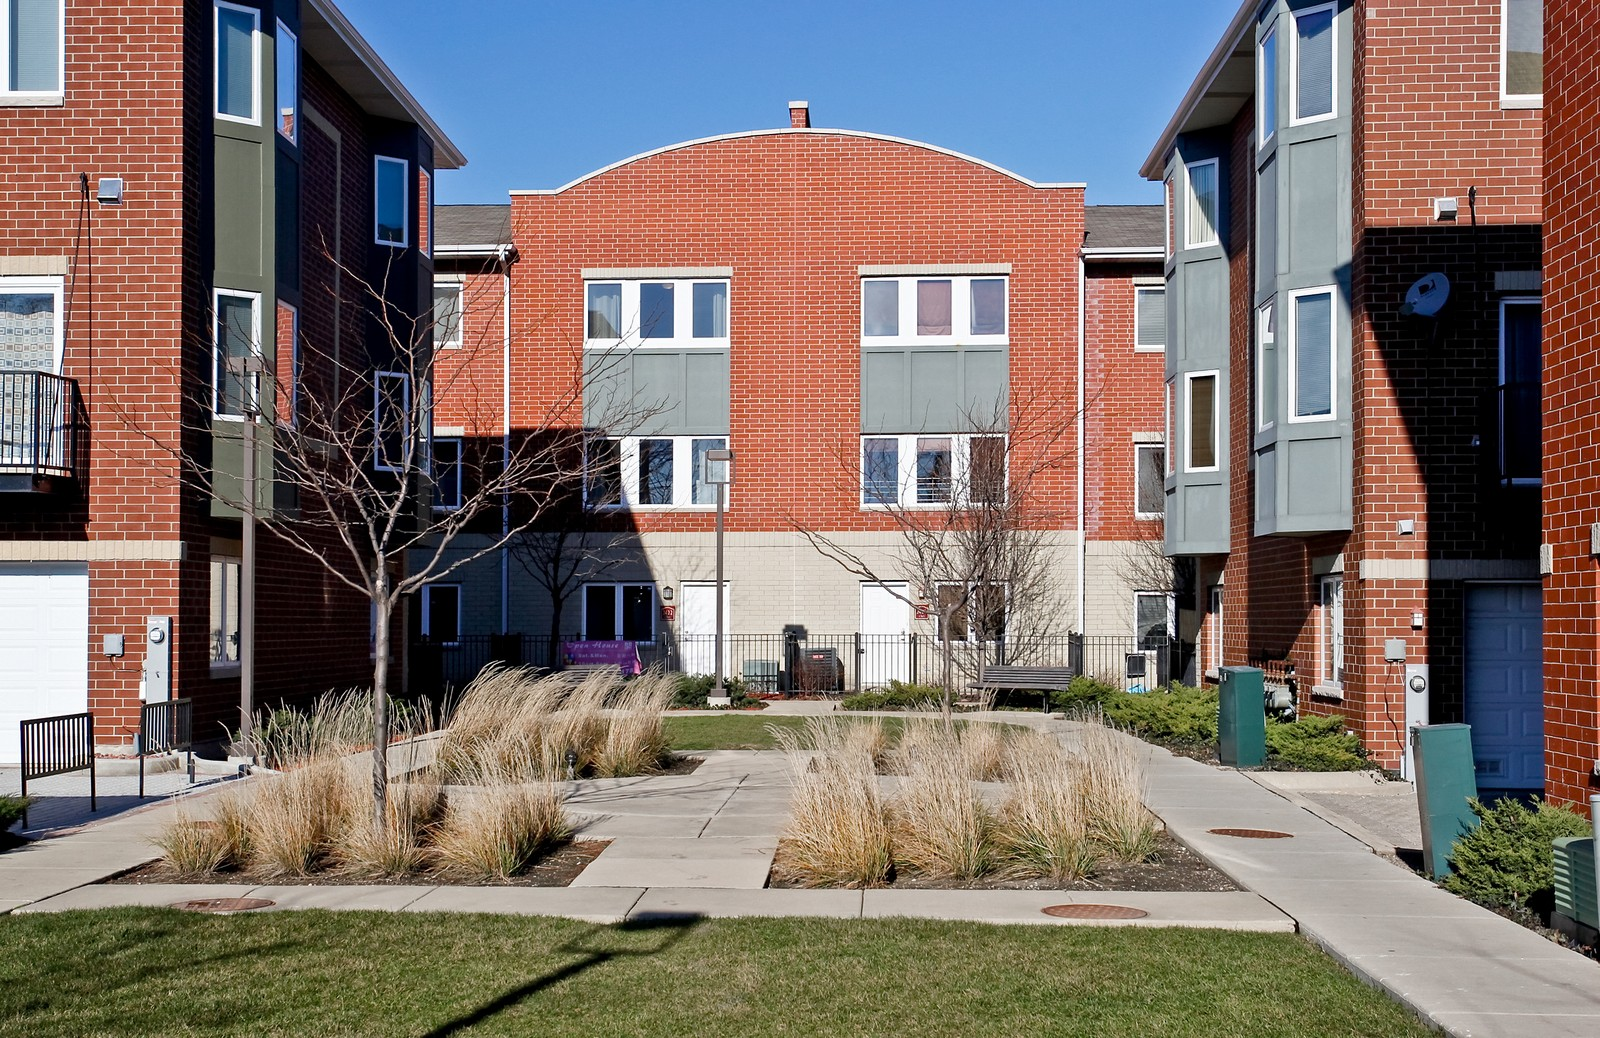 Real Estate Photography - 2422 W Bross, Chicago, IL, 60608 - Front View